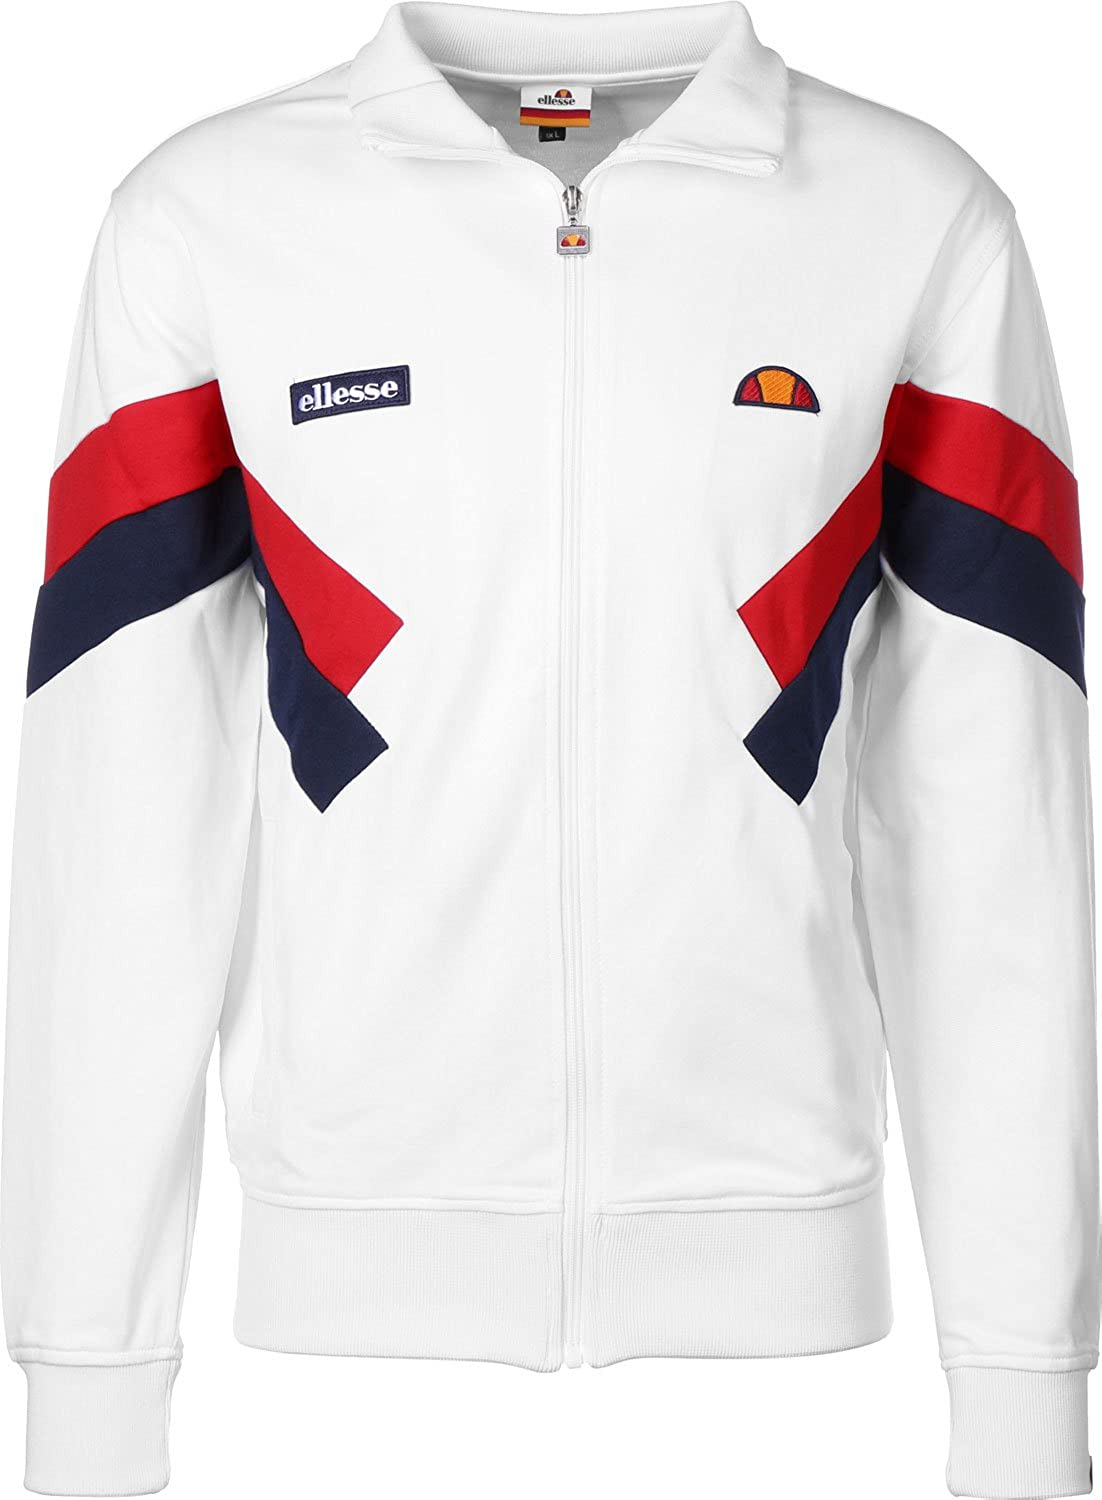 4e46d7e8e53e14 Ellesse Chierroni Trainingsjacke optic white: Amazon.de: Bekleidung